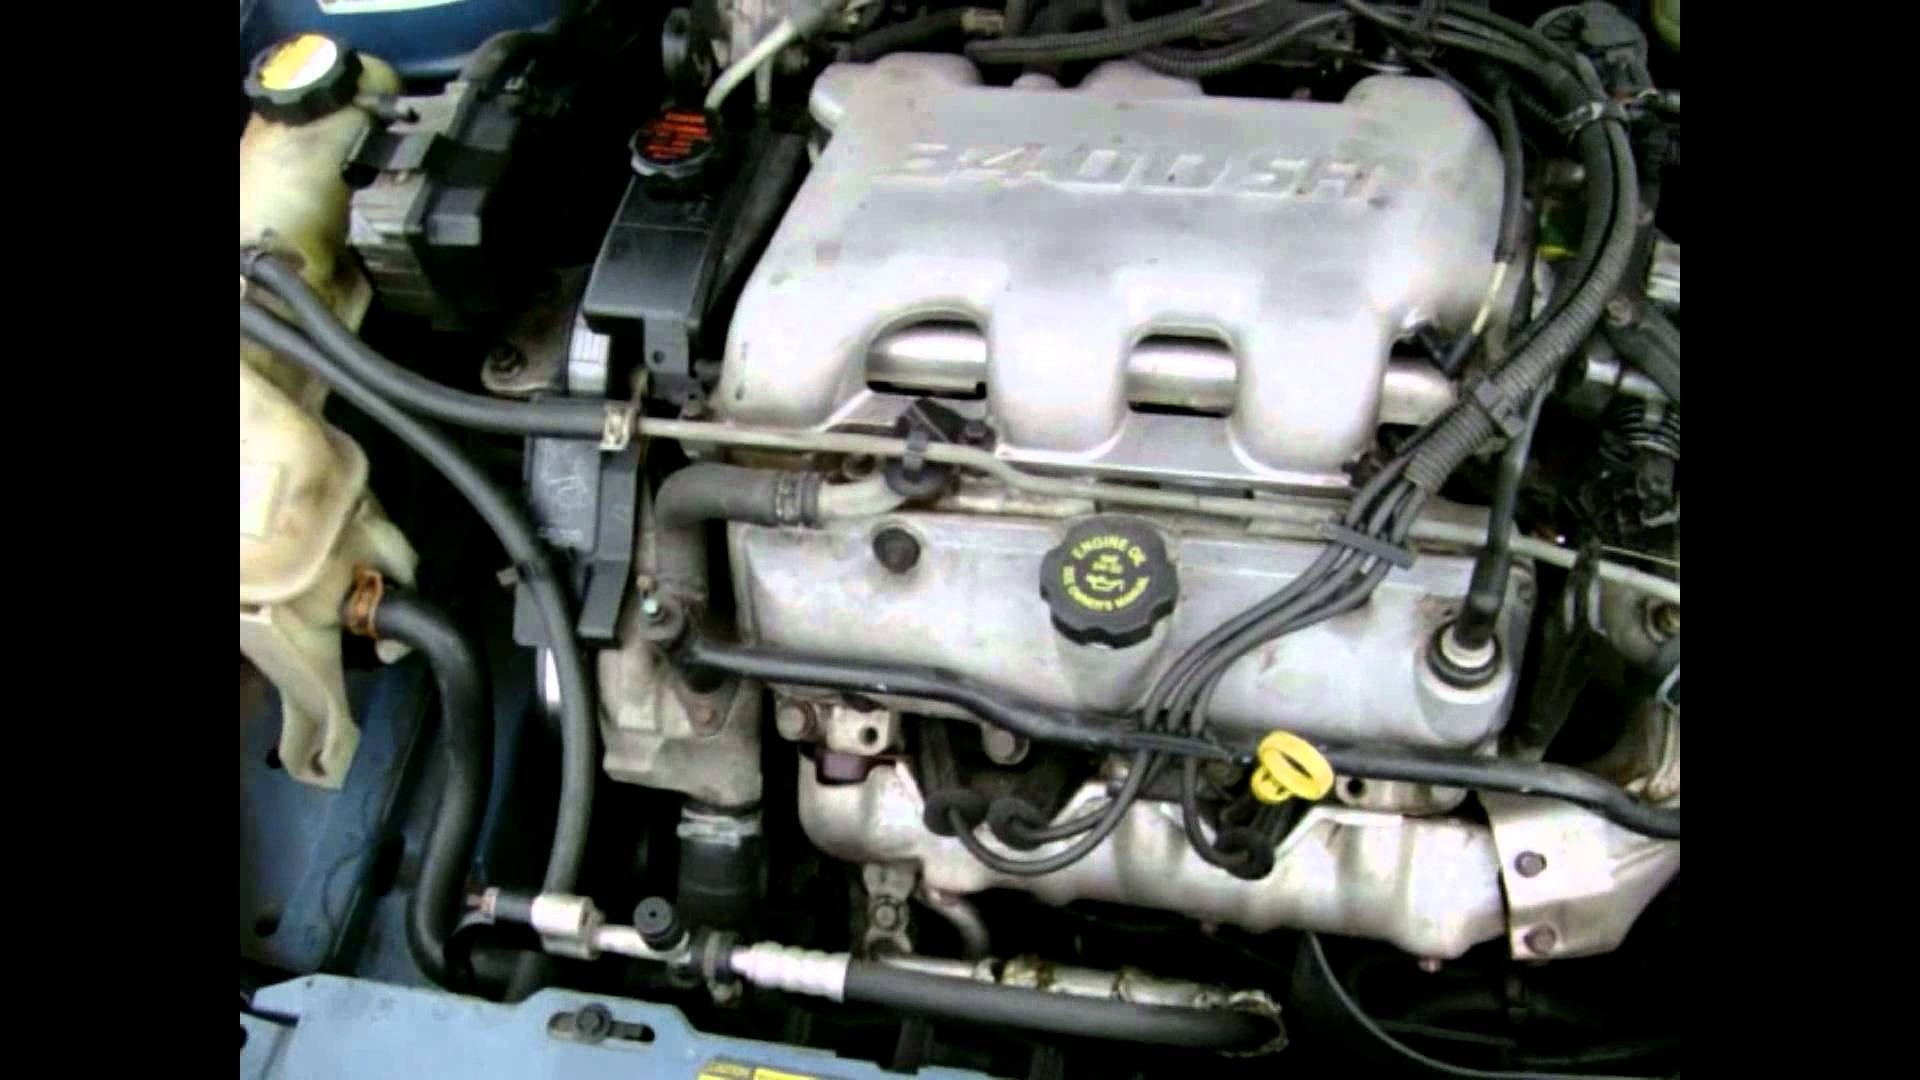 🏆 [DIAGRAM in Pictures Database] Toyota 3 4 Liter V6 Engine Diagrams Just  Download or Read Engine Diagrams - LADDER-DIAGRAMS.ONYXUM.COMComplete Diagram Picture Database - Onyxum.com